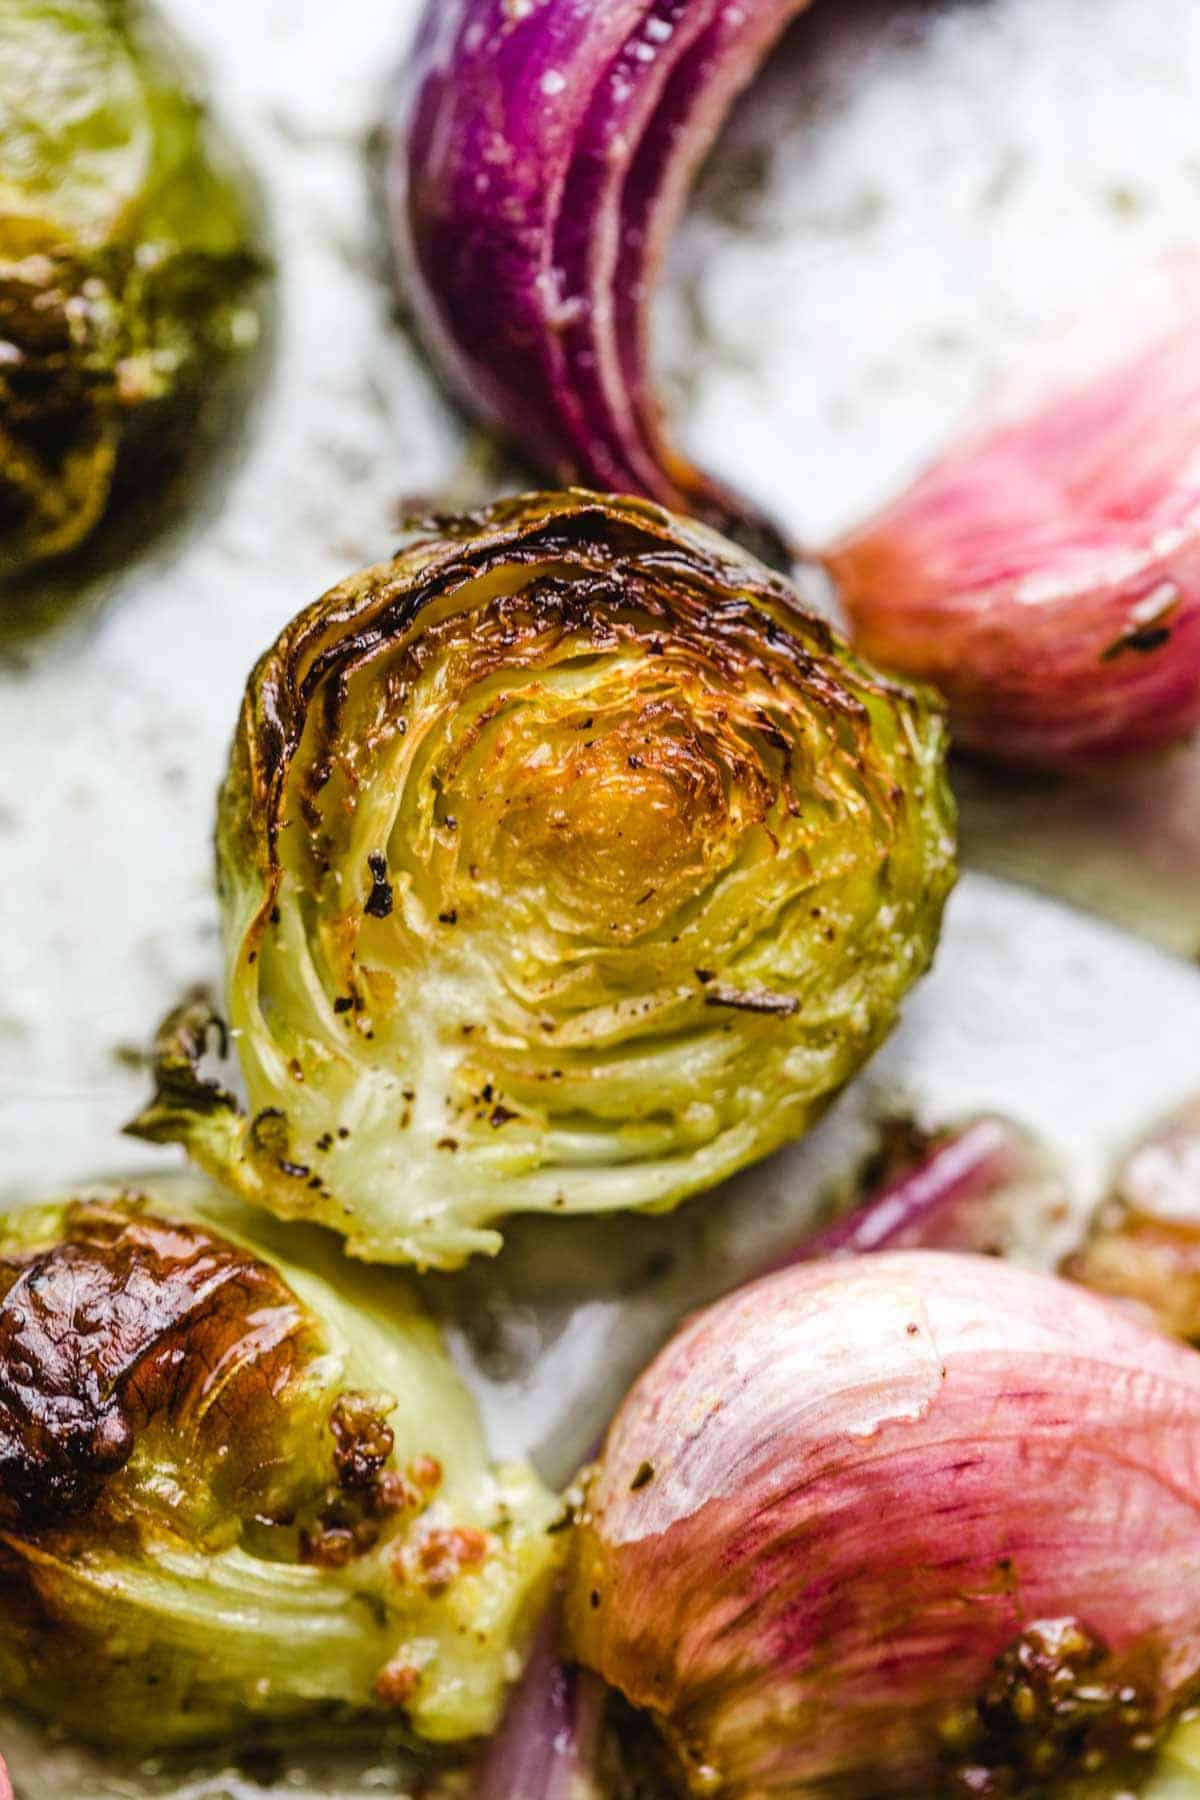 A close up shot of a roasted brussel sprout